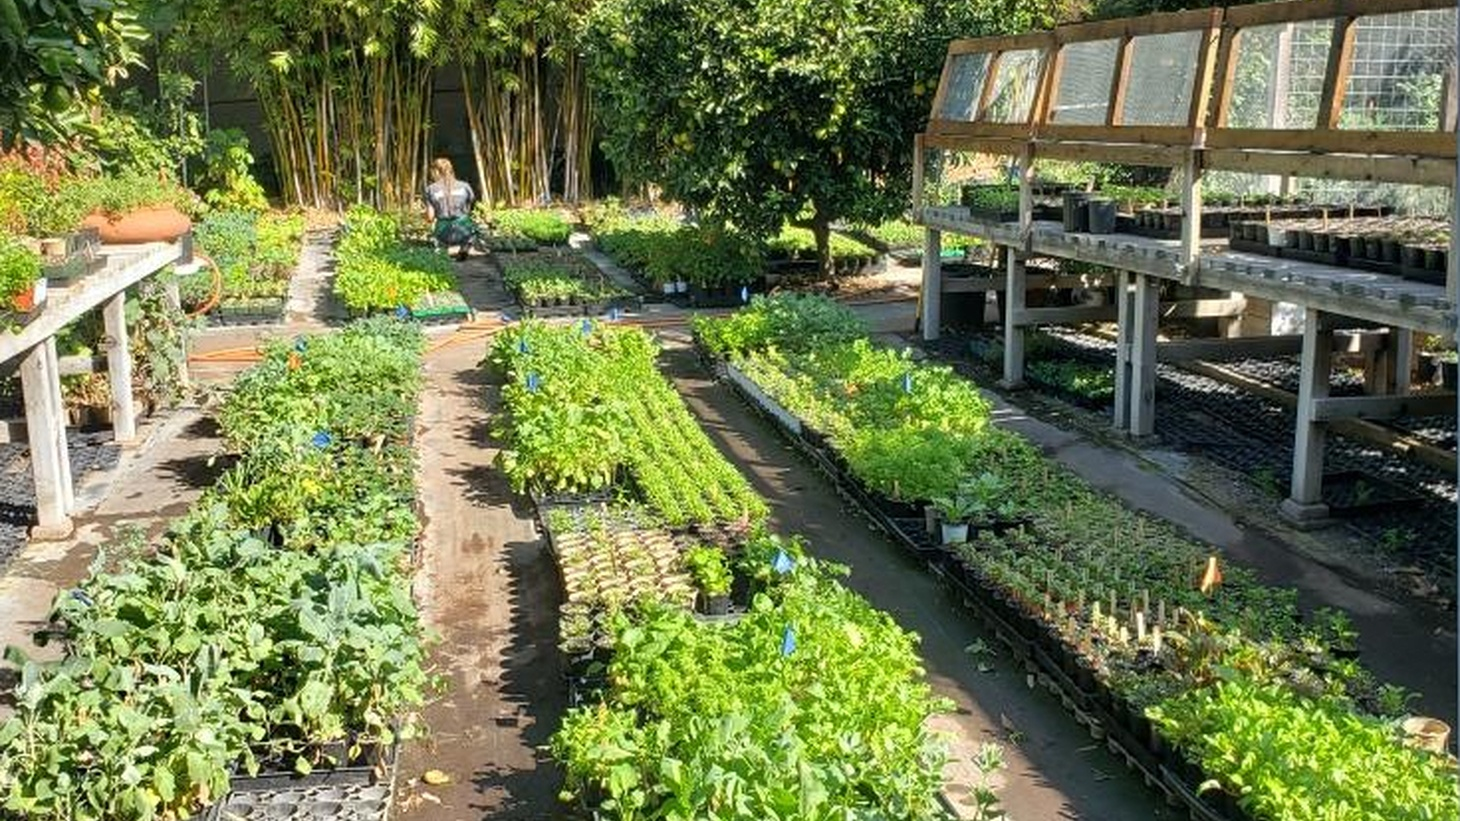 Logan's Gardens may be the only Black-owned nursery in Southern California. Evan Kleiman recommends buying healthy seedlings there.